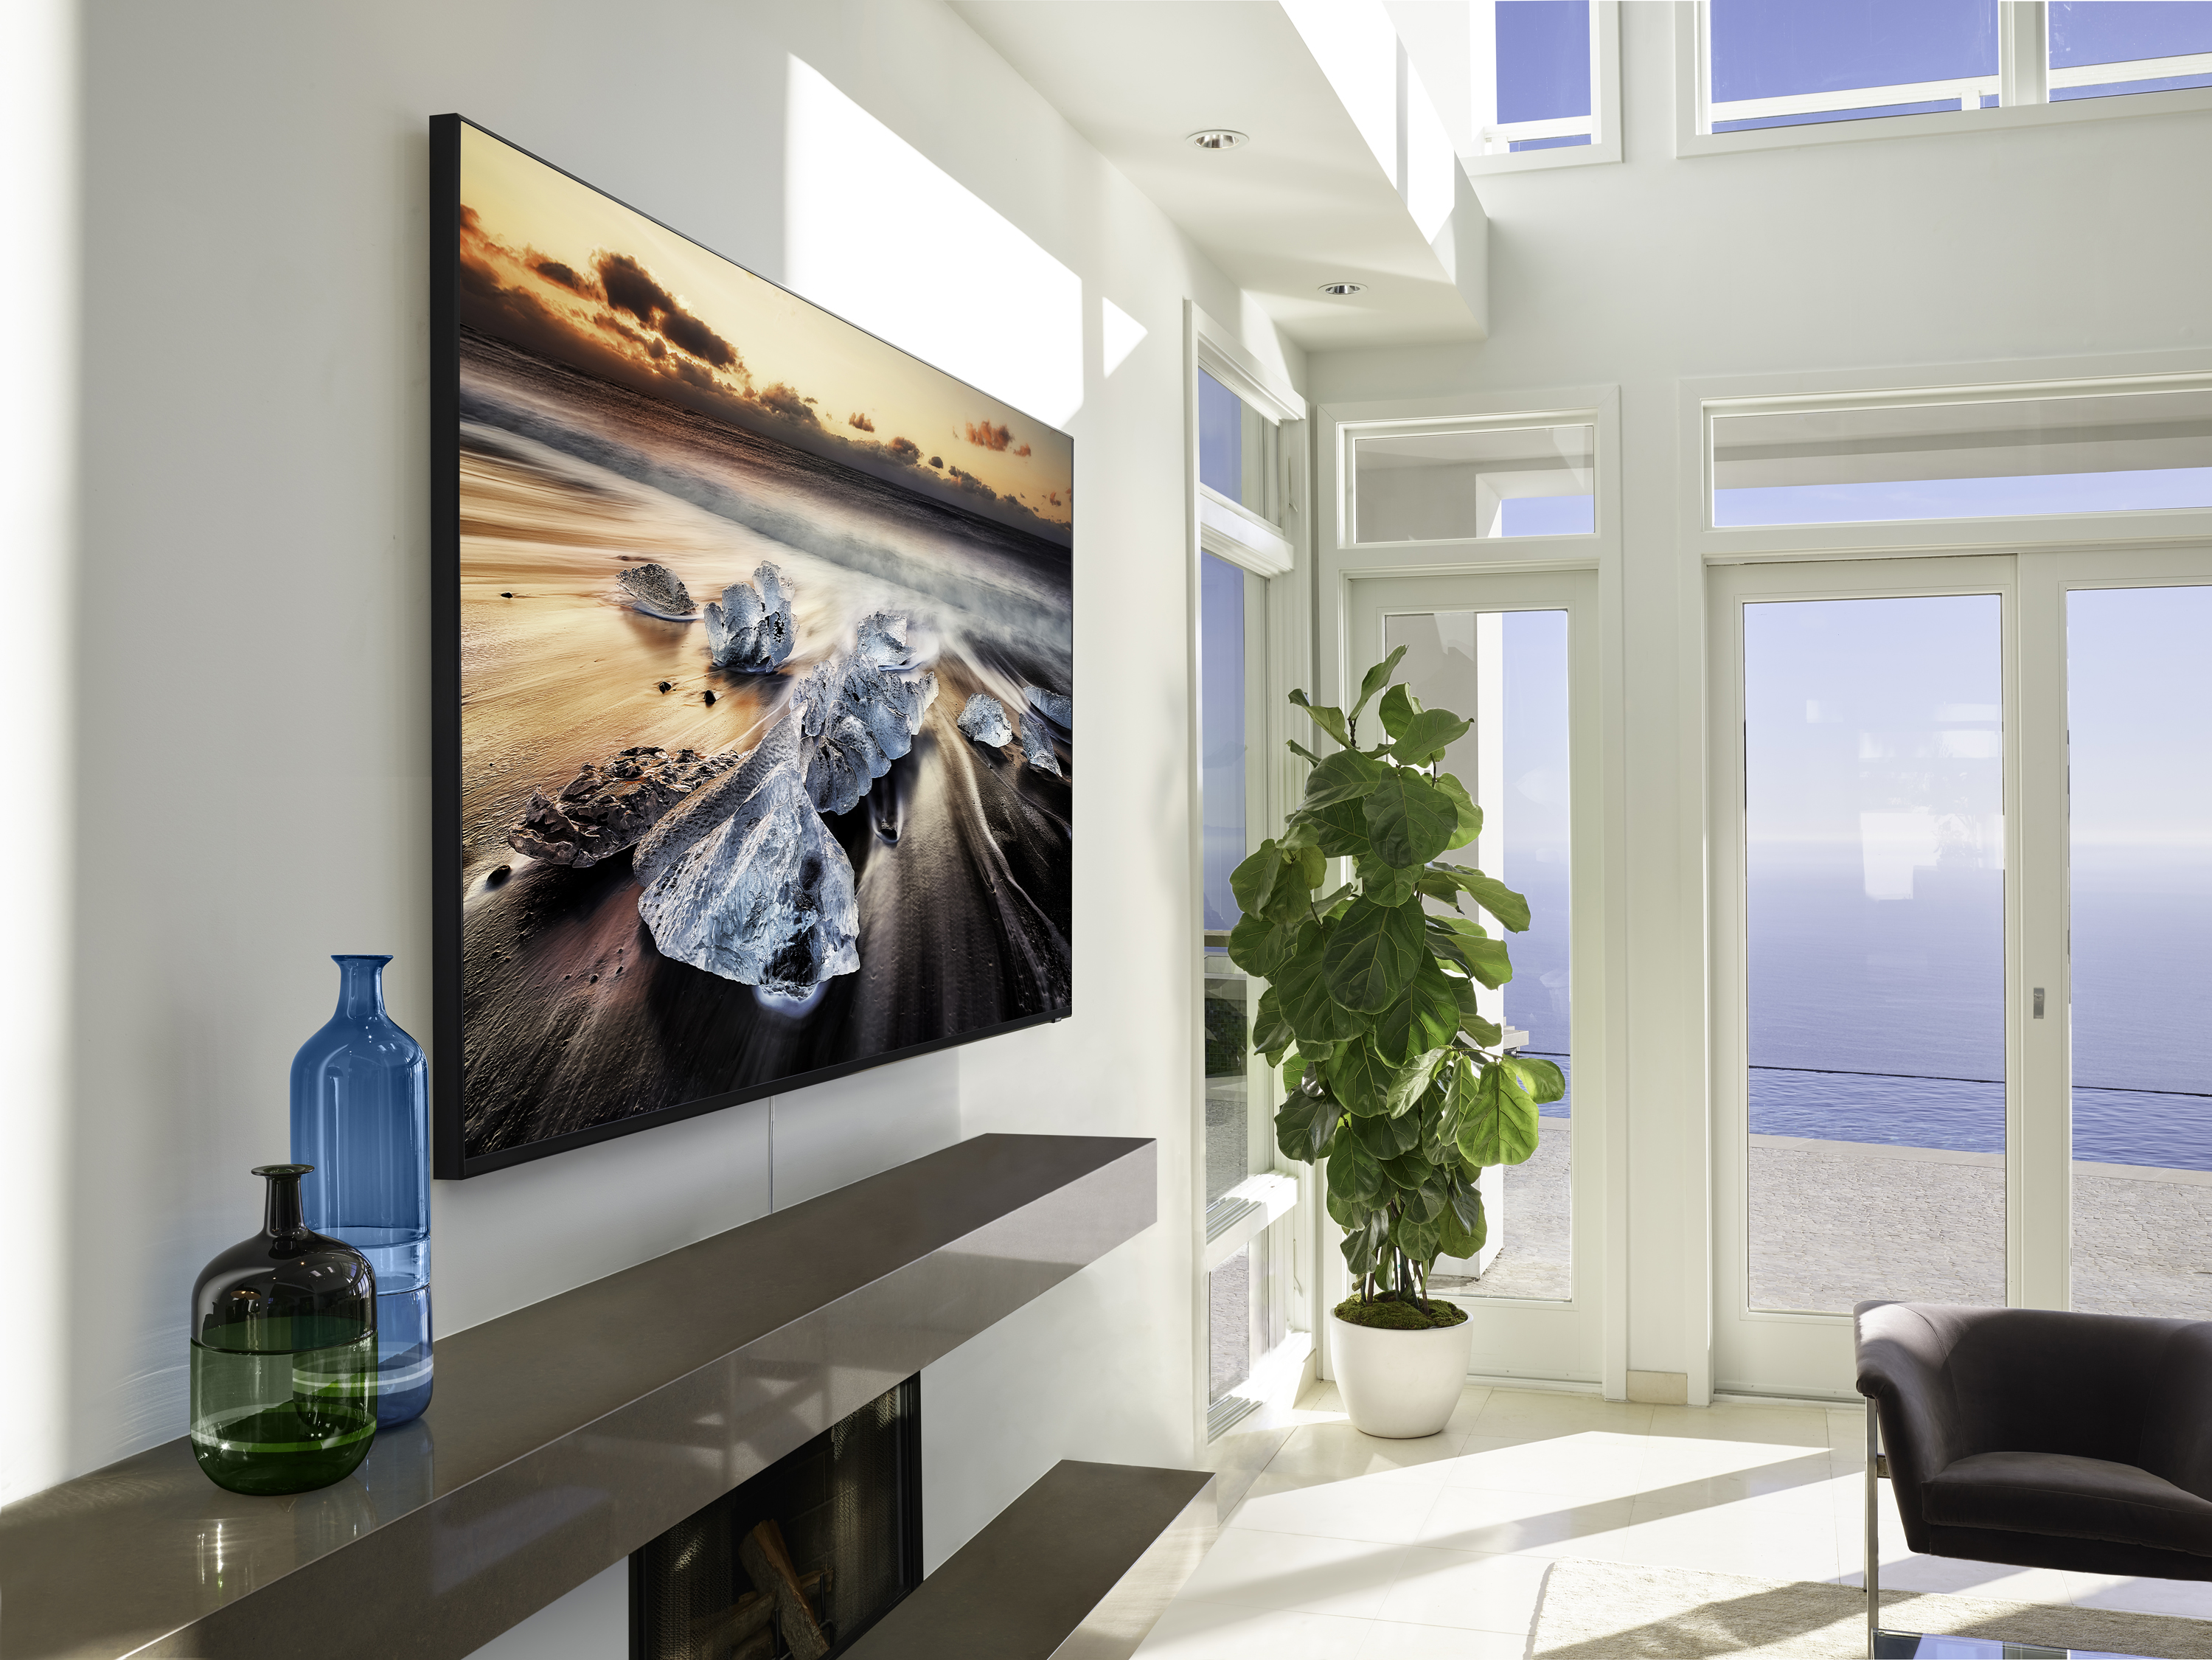 Samsung QLED 2019 Range Ready to Order